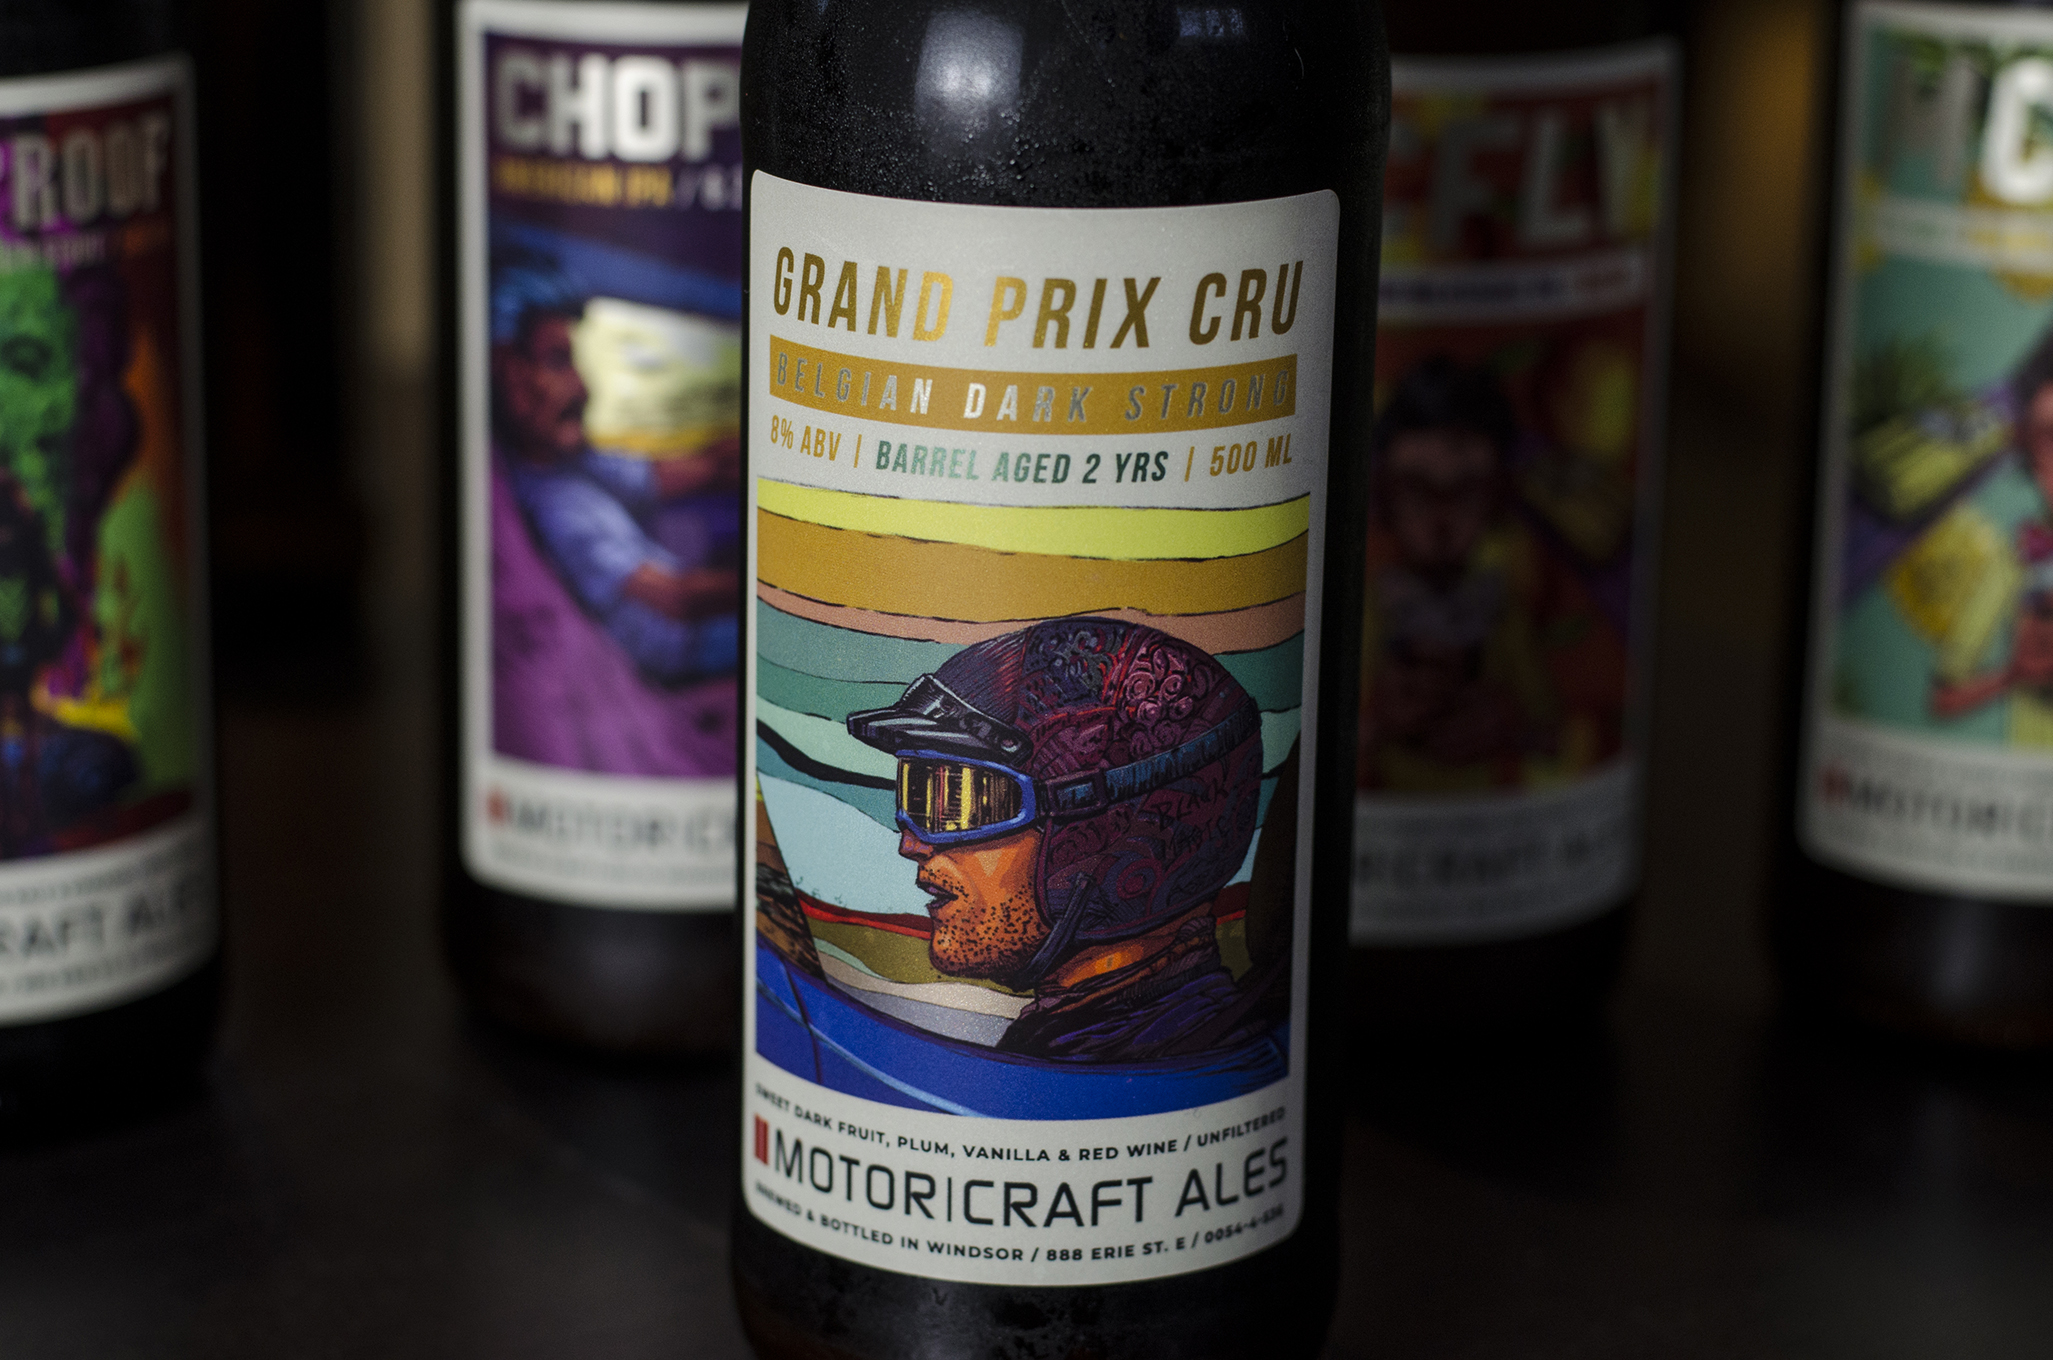 Grand Prix Cru from Motor Craft Ales in Windsor, Ontario.